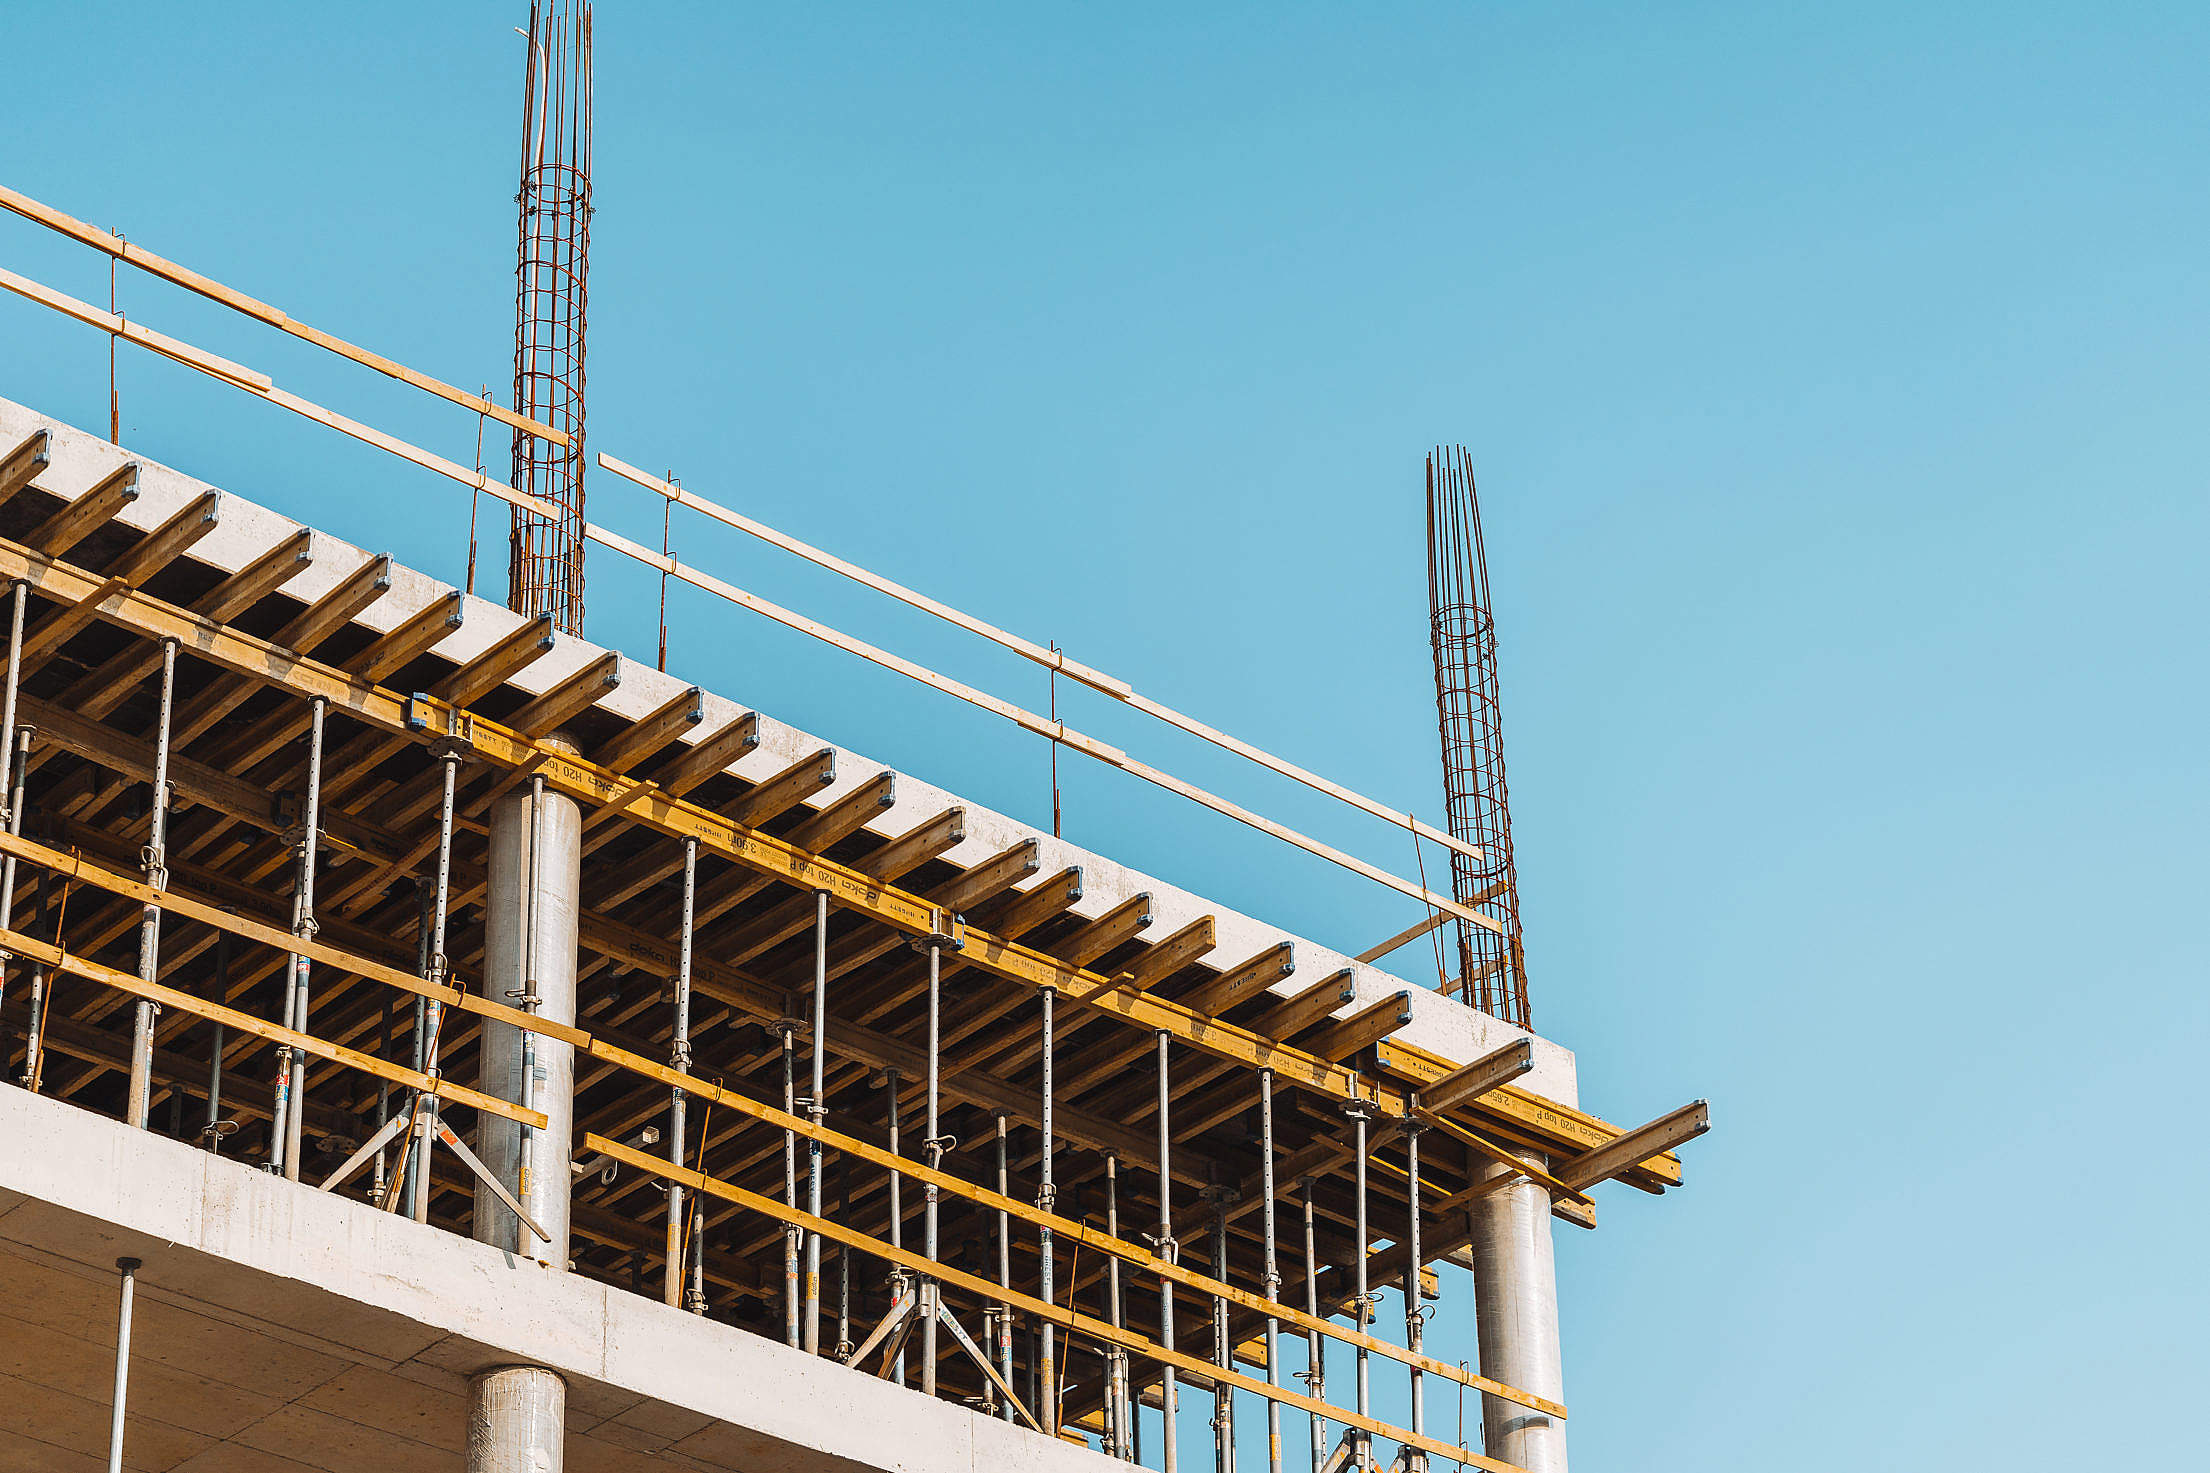 New Office Building Construction Free Stock Photo